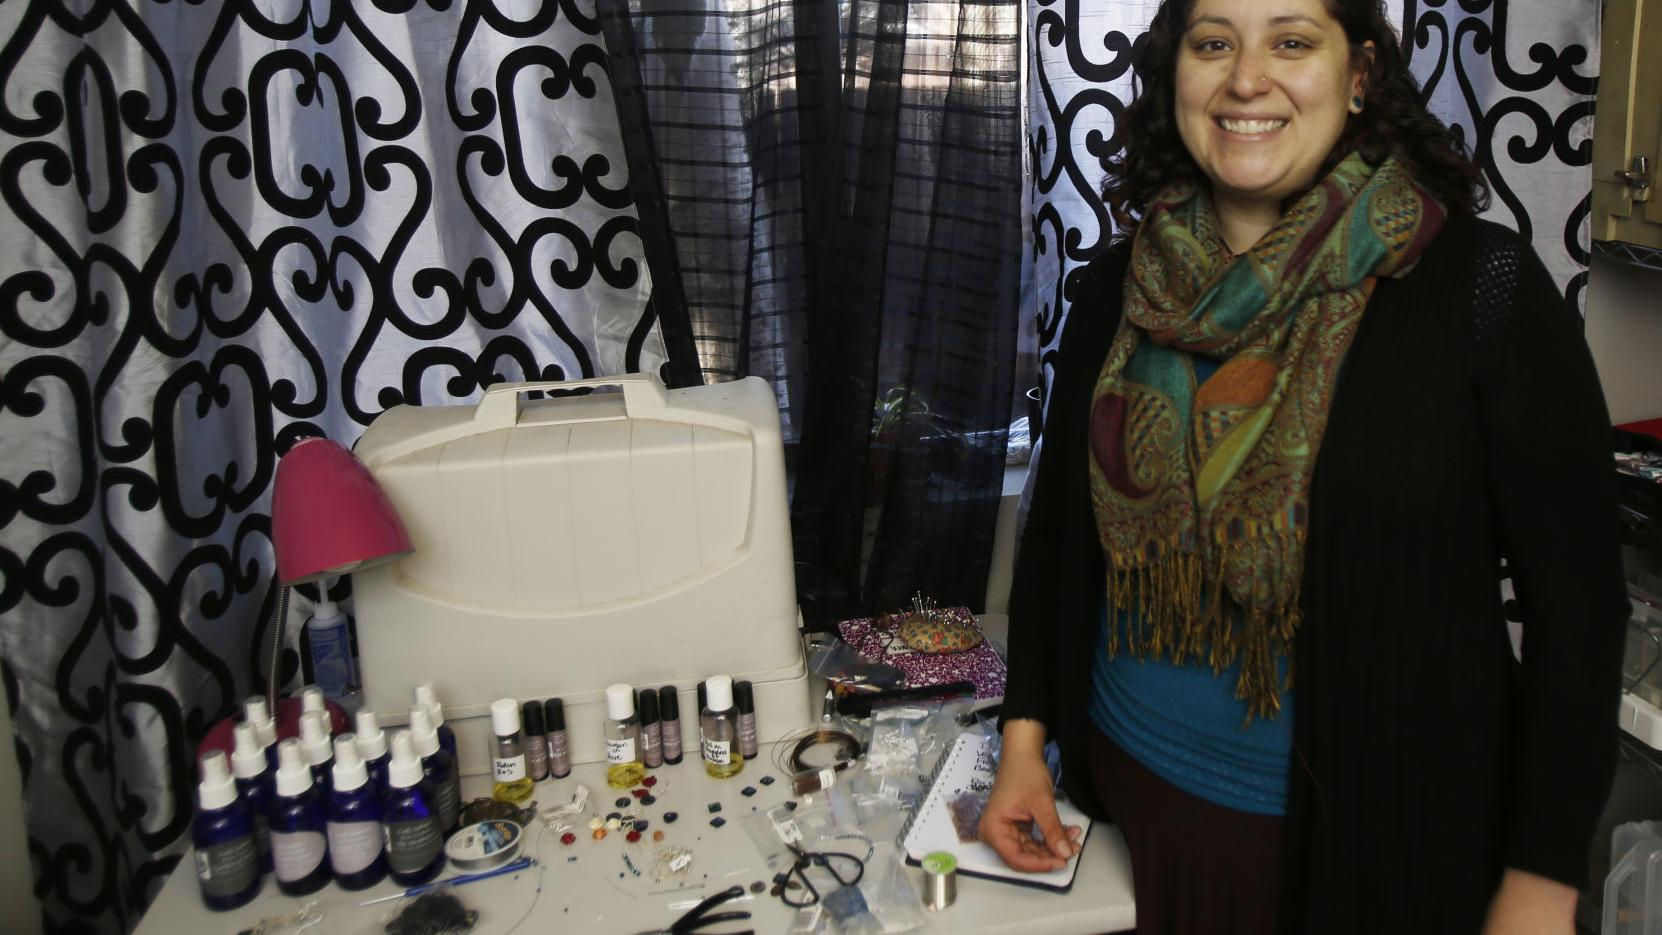 Lady Sabine's: Jewelry, body care and more